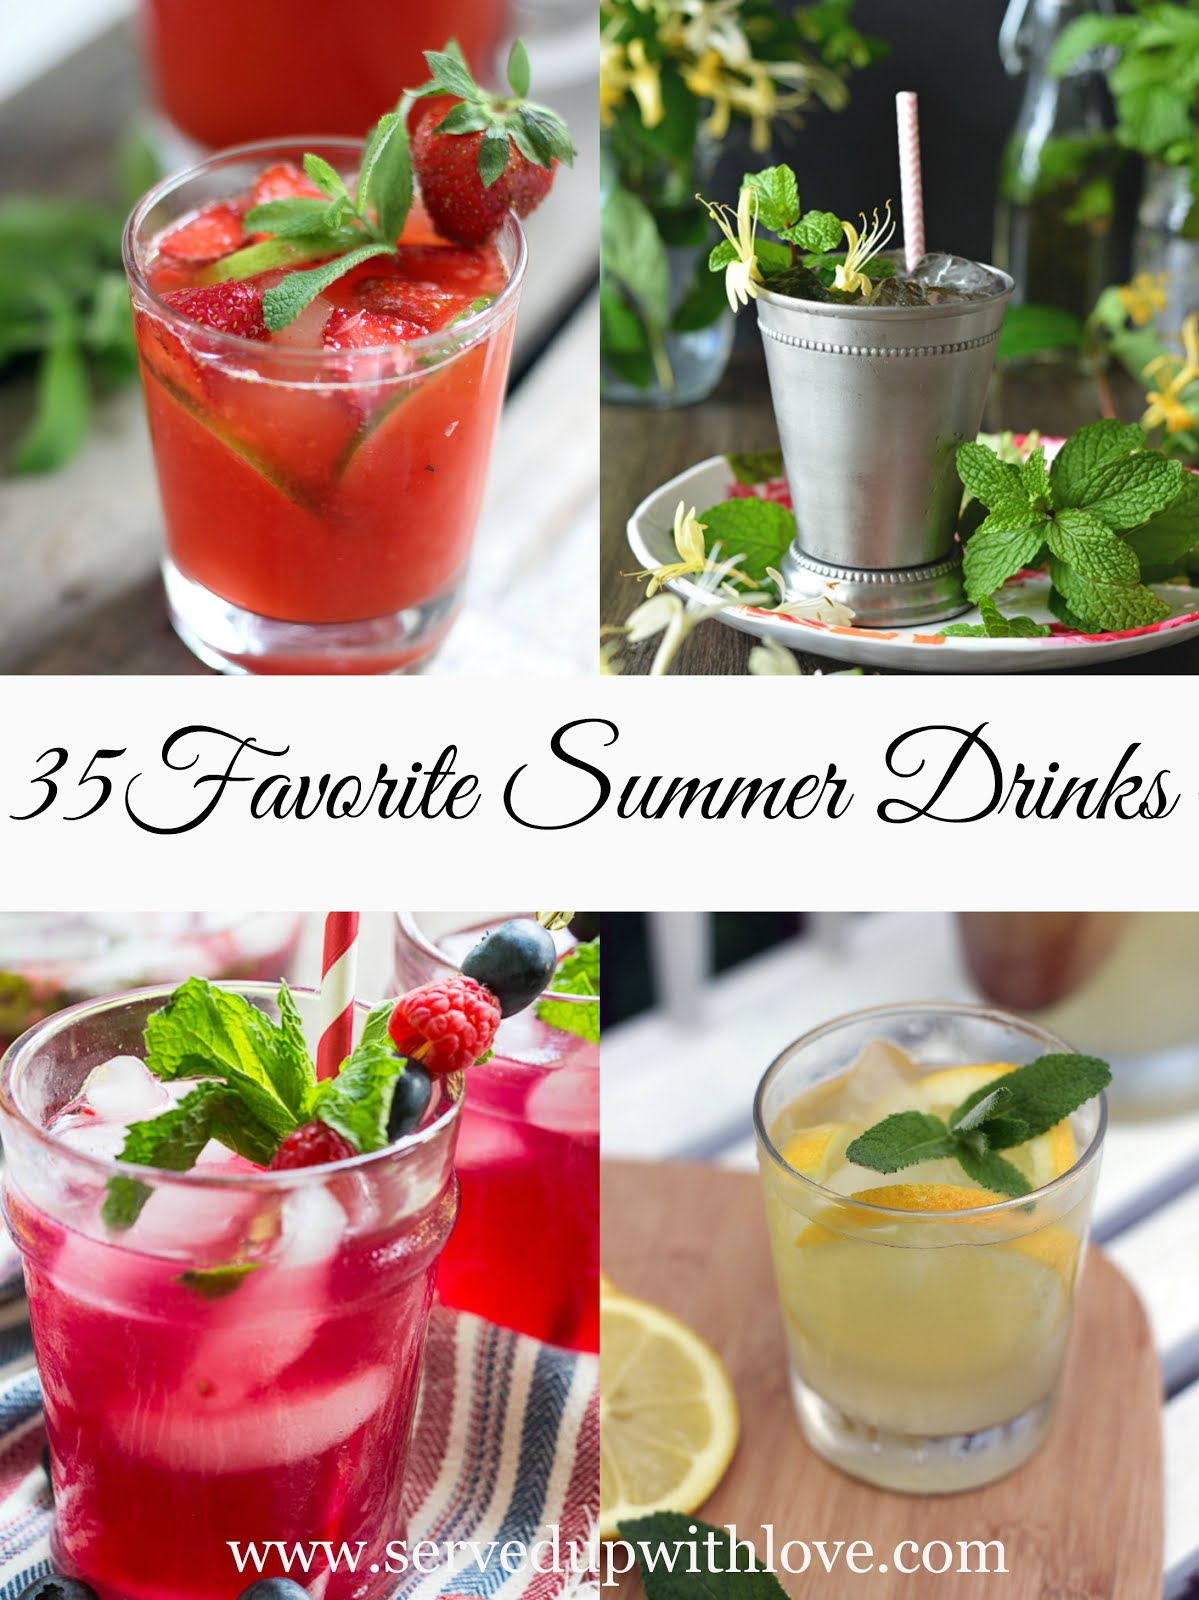 *35 Favorite Summer Drinks*